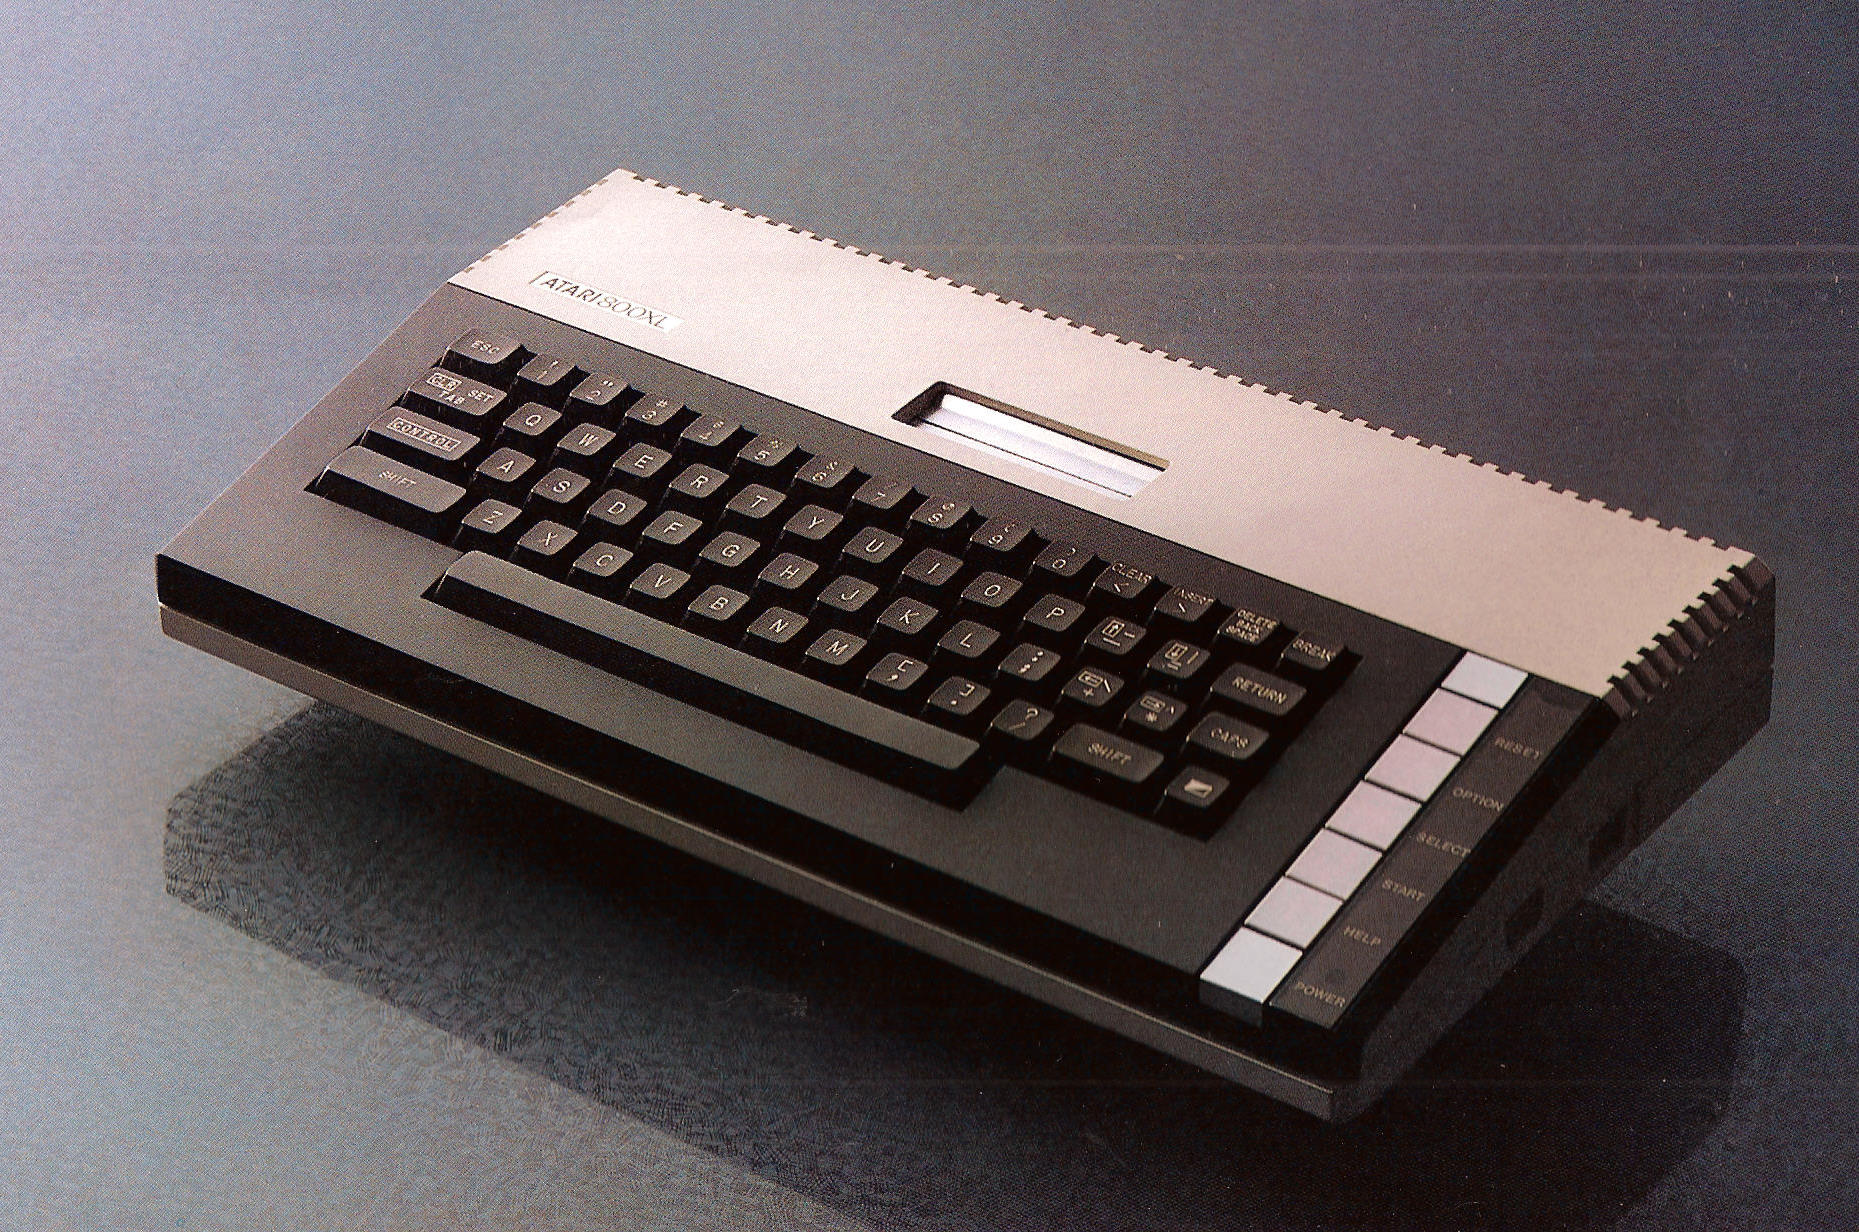 Atari 800XL Backgrounds on Wallpapers Vista